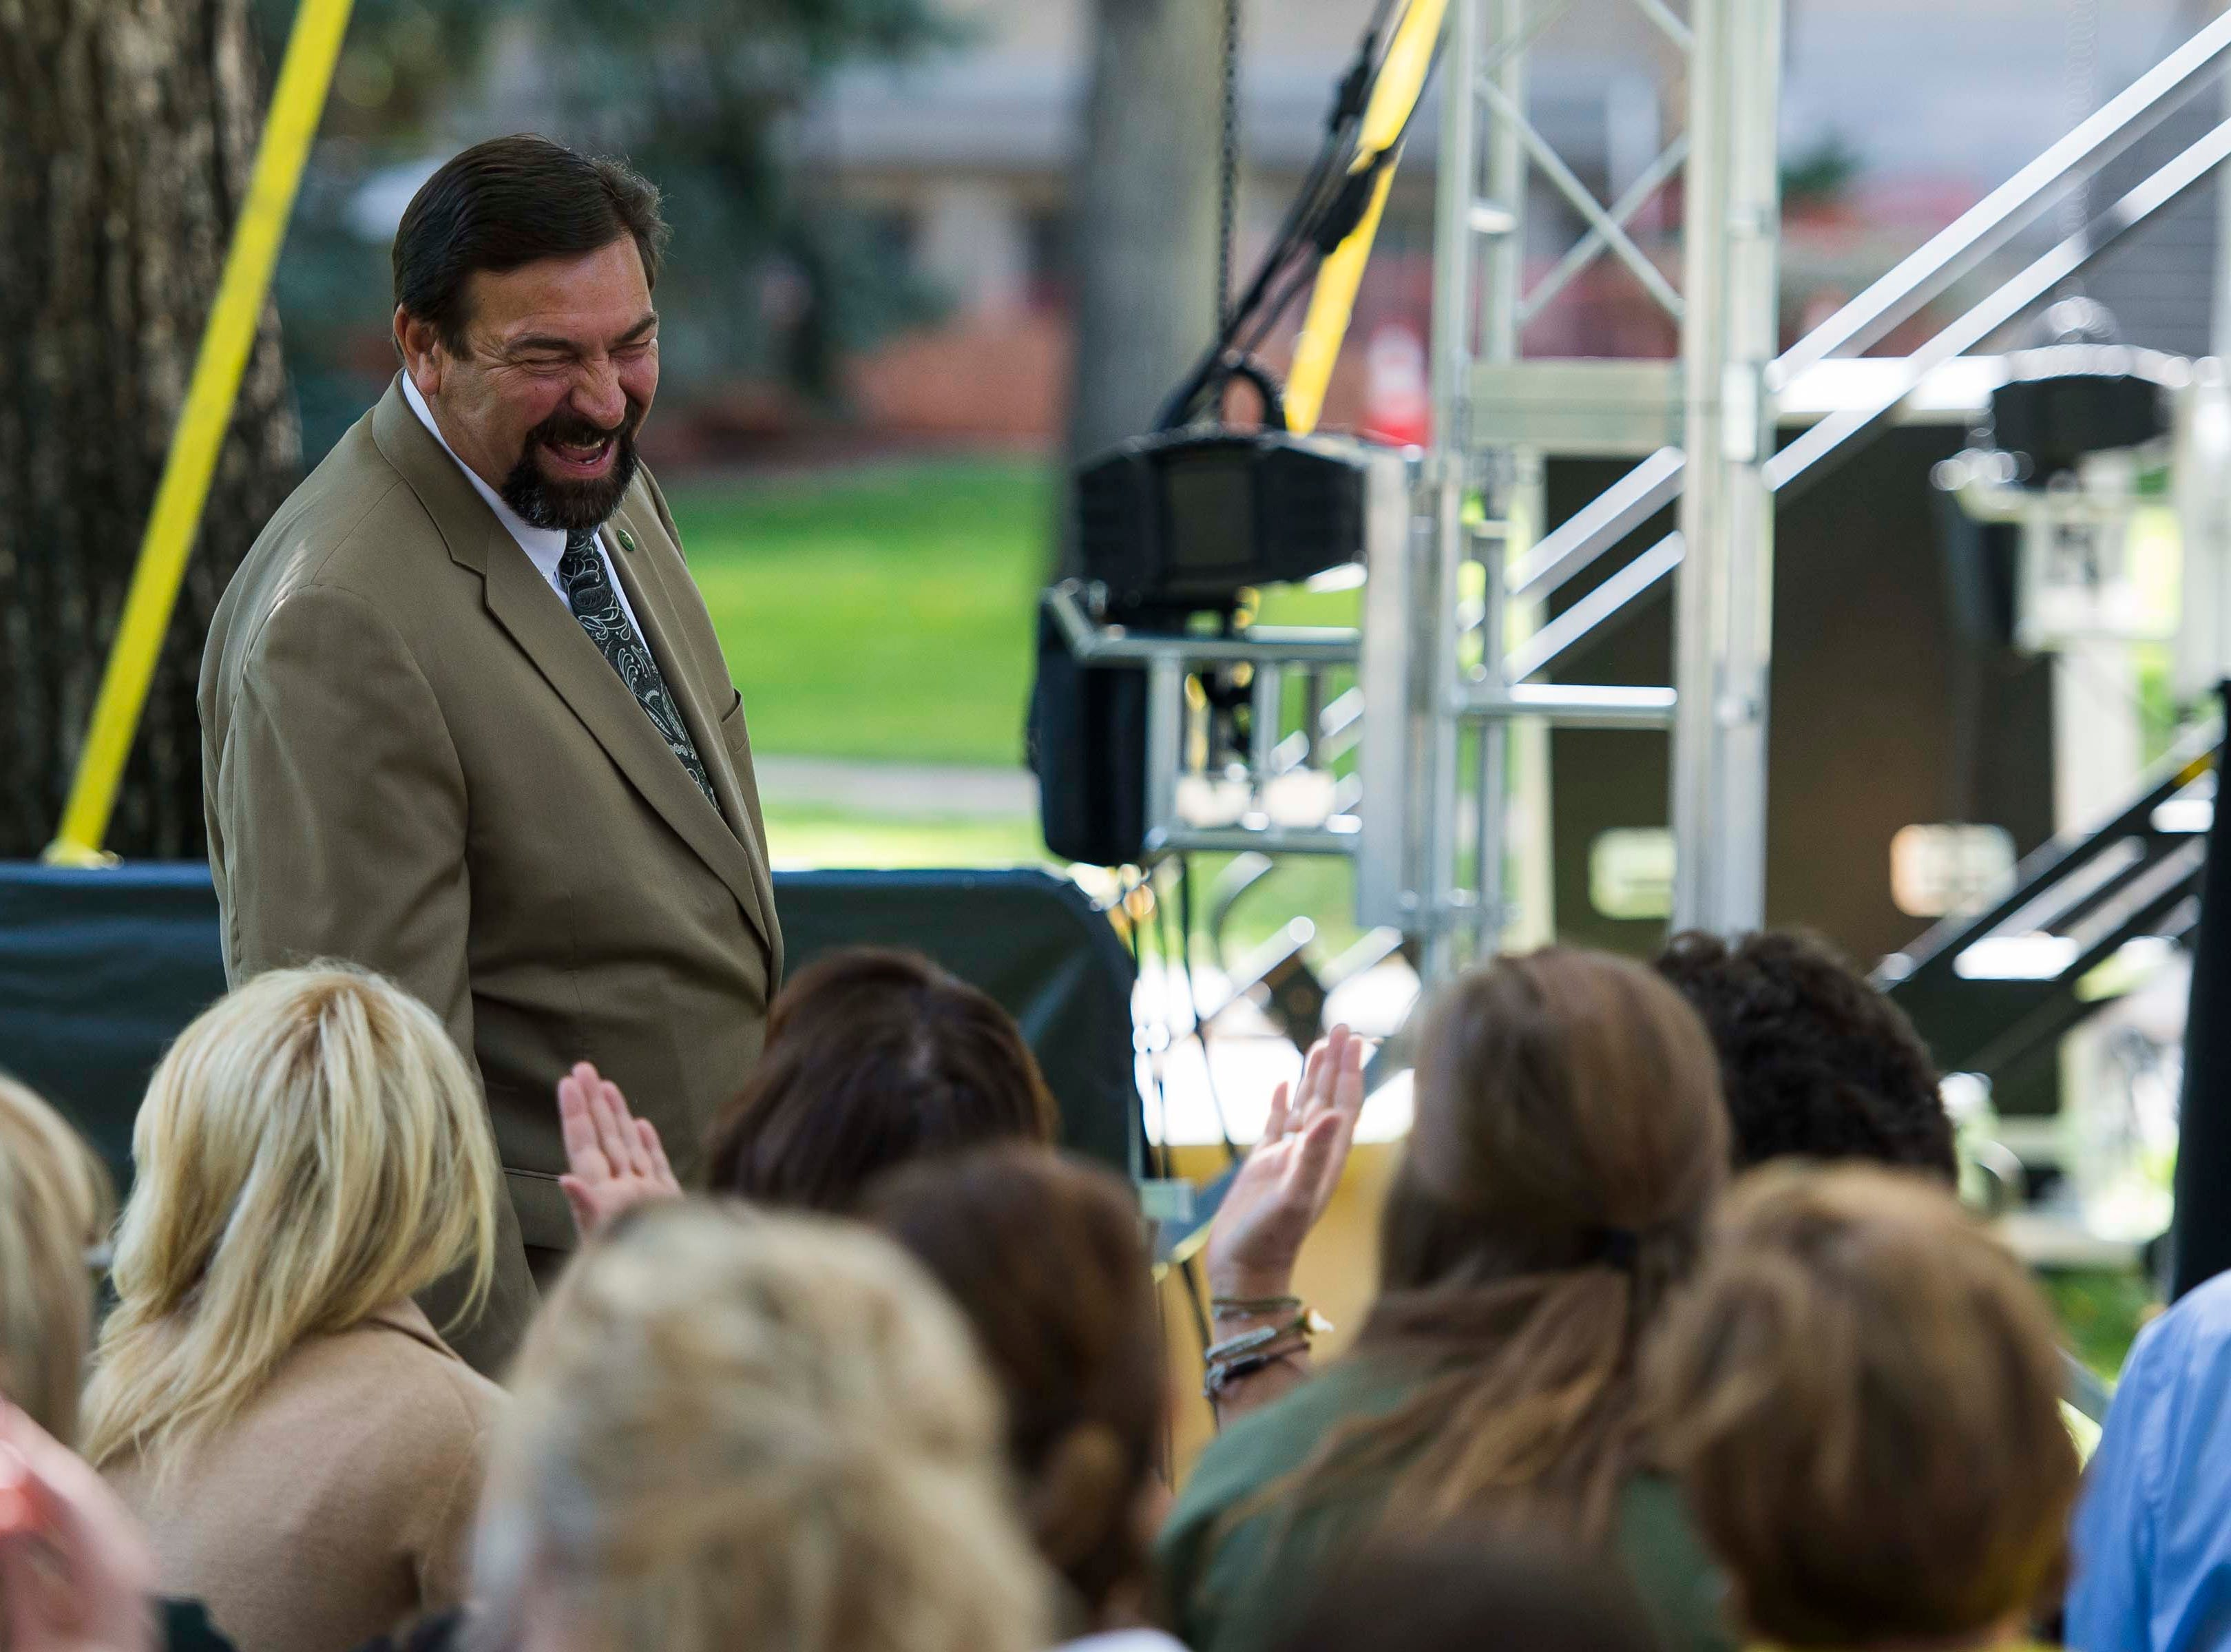 Colorado State University President Tony Frank chats with people in the front row before speaking to an audience on Wednesday, Oct. 3, 2018, at the 2018 fall address on the CSU campus in Fort Collins, Colo.